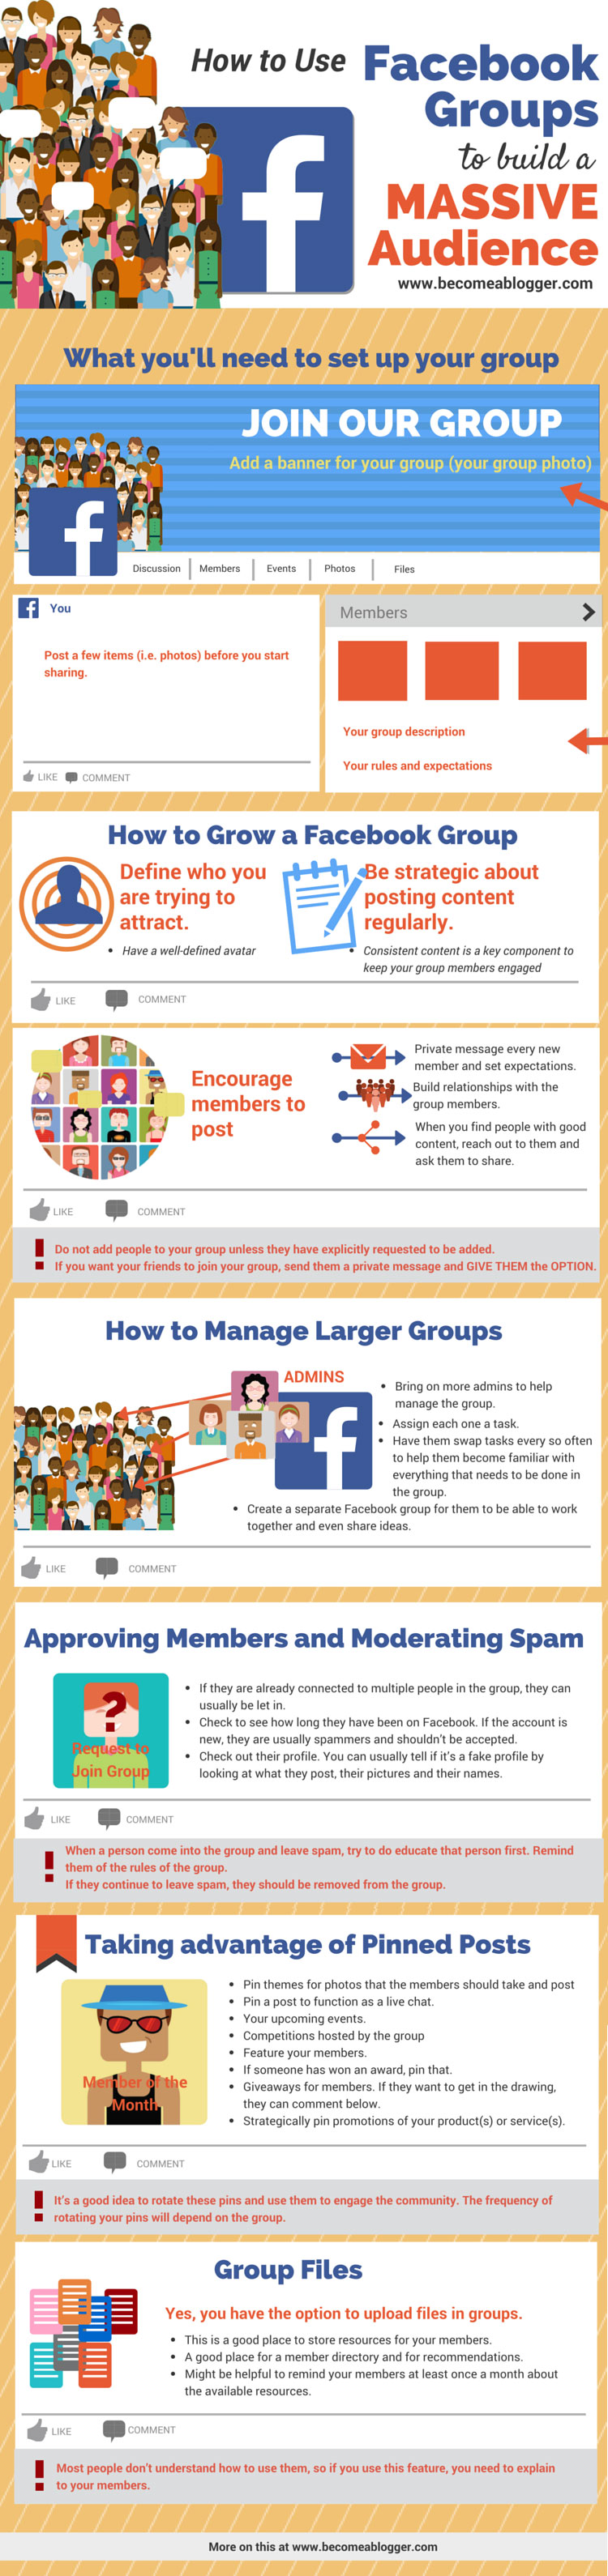 Building a Massive Audience Using Facebook Groups - Infographic